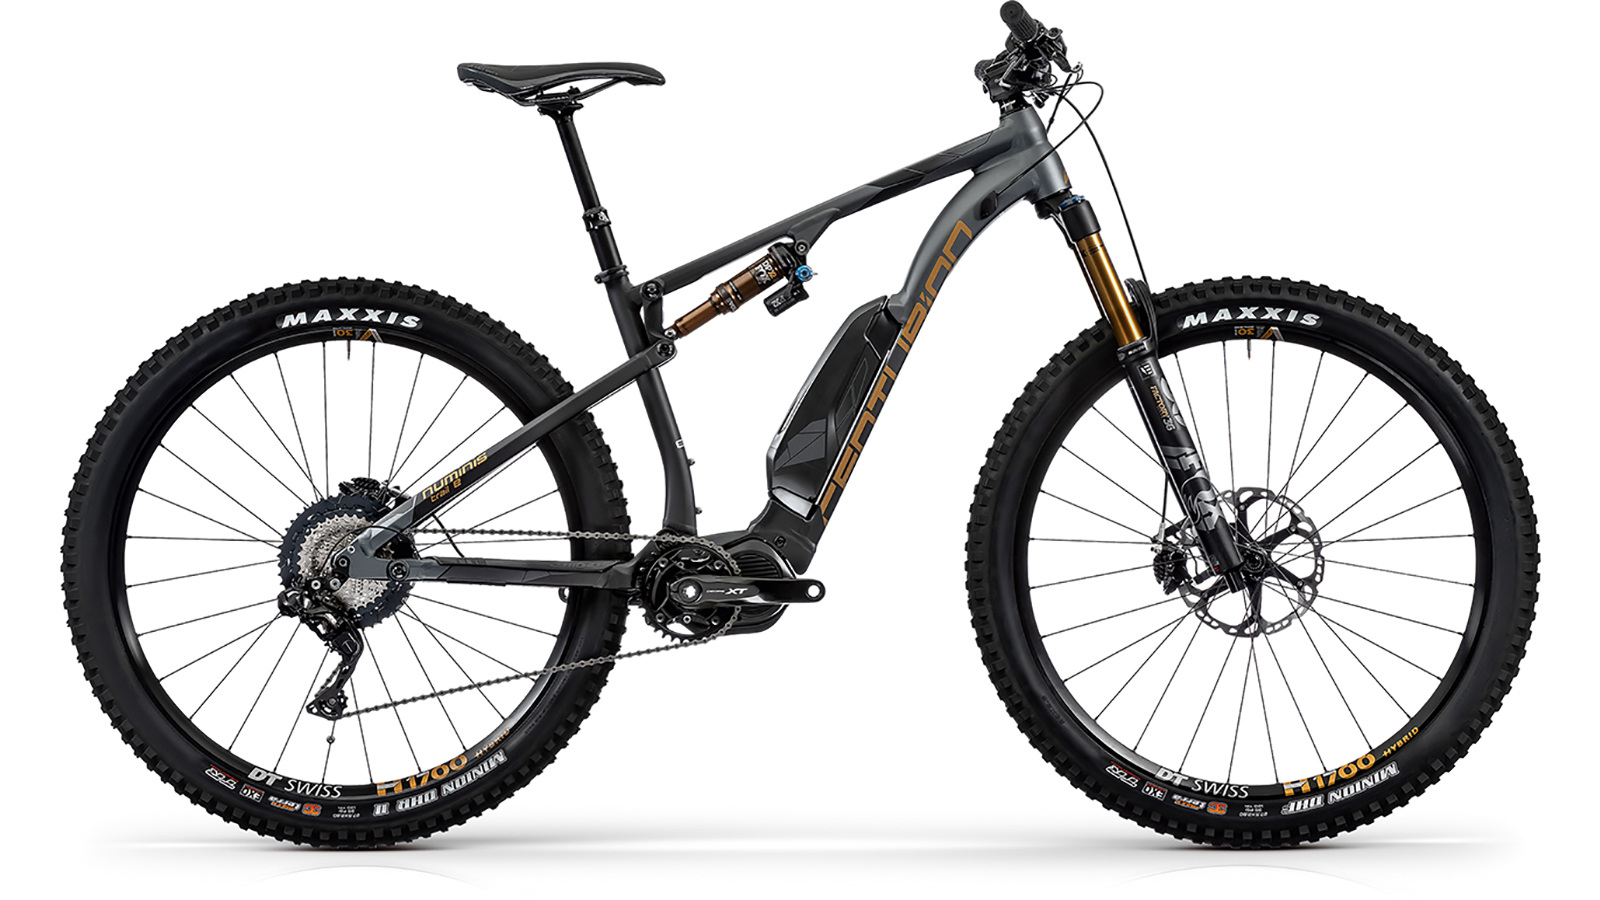 Numinis Trail E F3500 holt Testsieg in der world of mtb (01/2019)